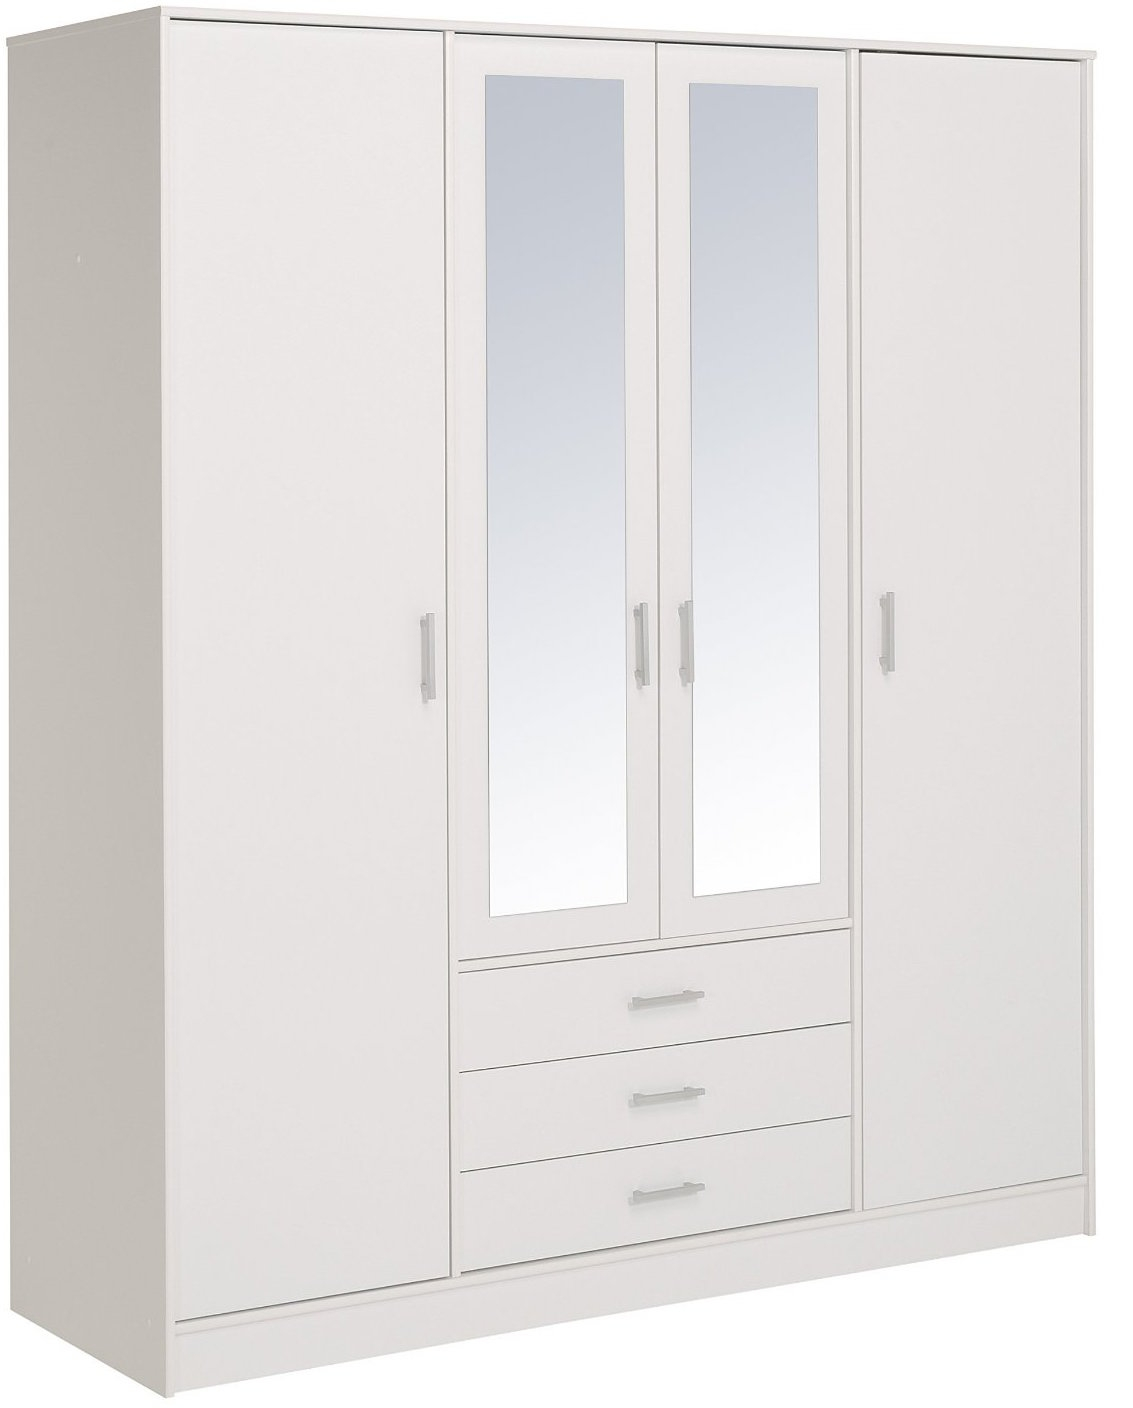 armoire bois blanc 4 portes 2 miroirs home 176. Black Bedroom Furniture Sets. Home Design Ideas